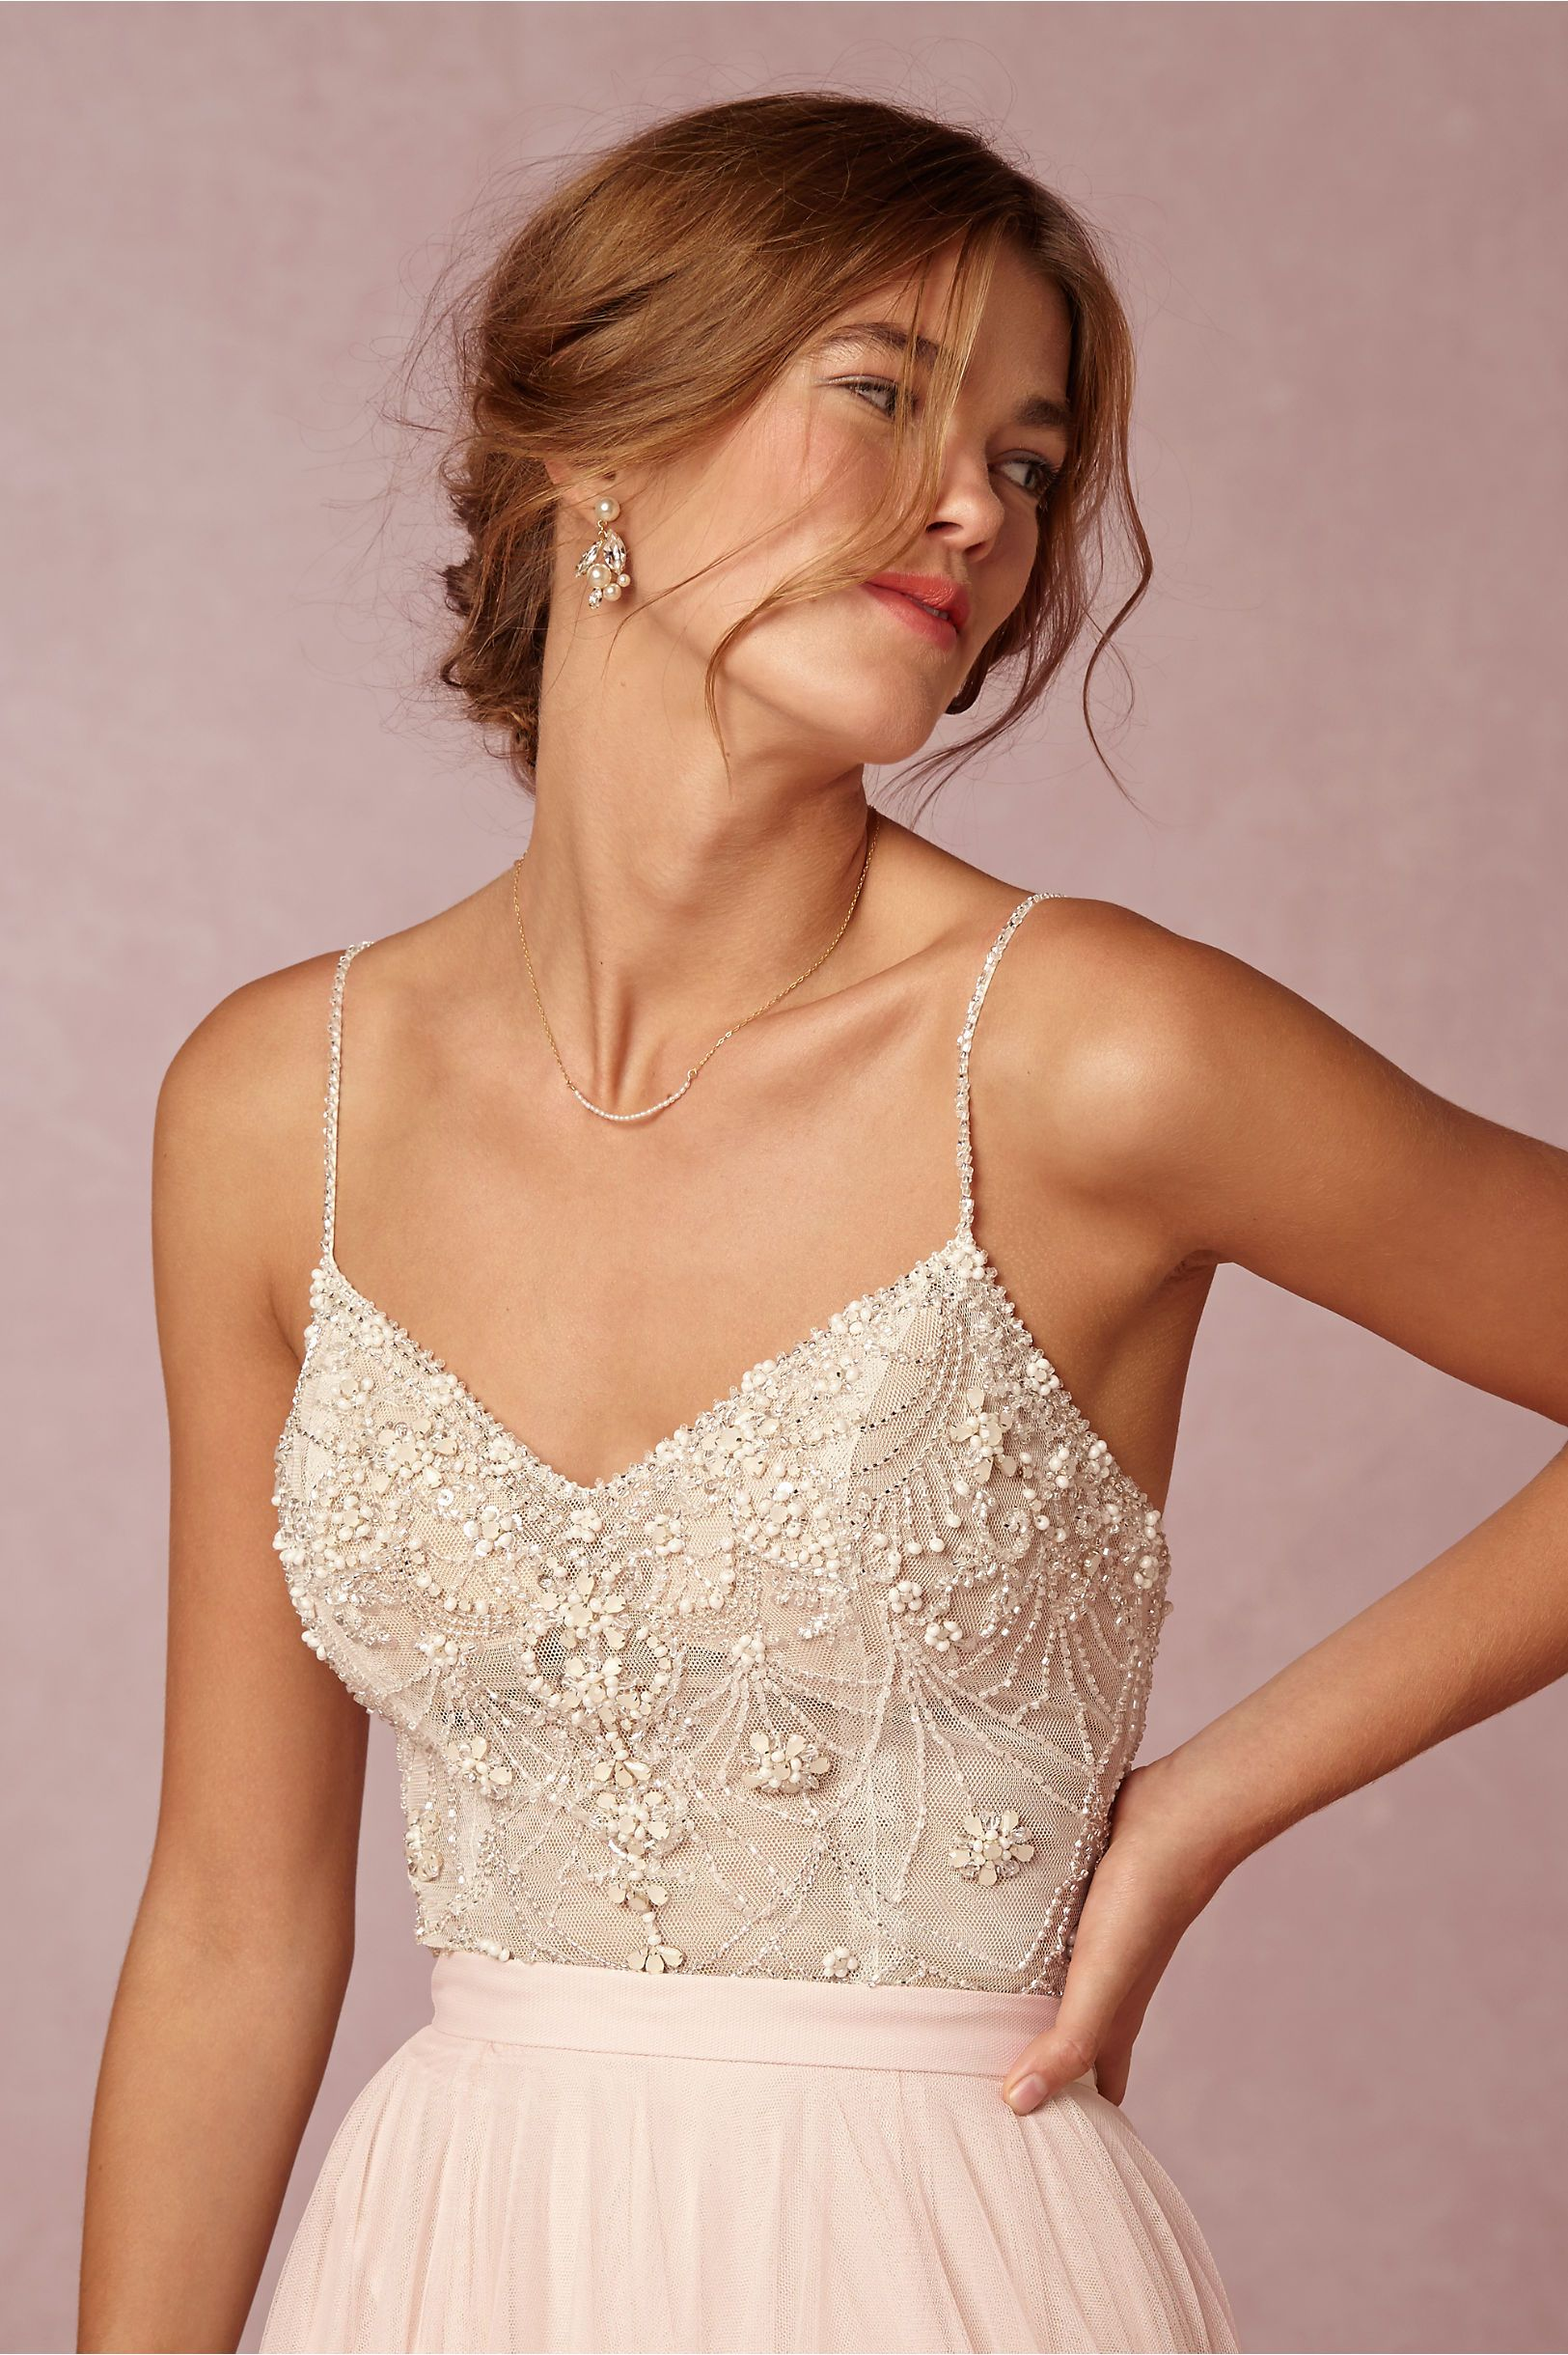 Lovemarleyoffic Ella Bodysuit And Amora Skirt In Porcelein Pink Exclusives For Bhldn